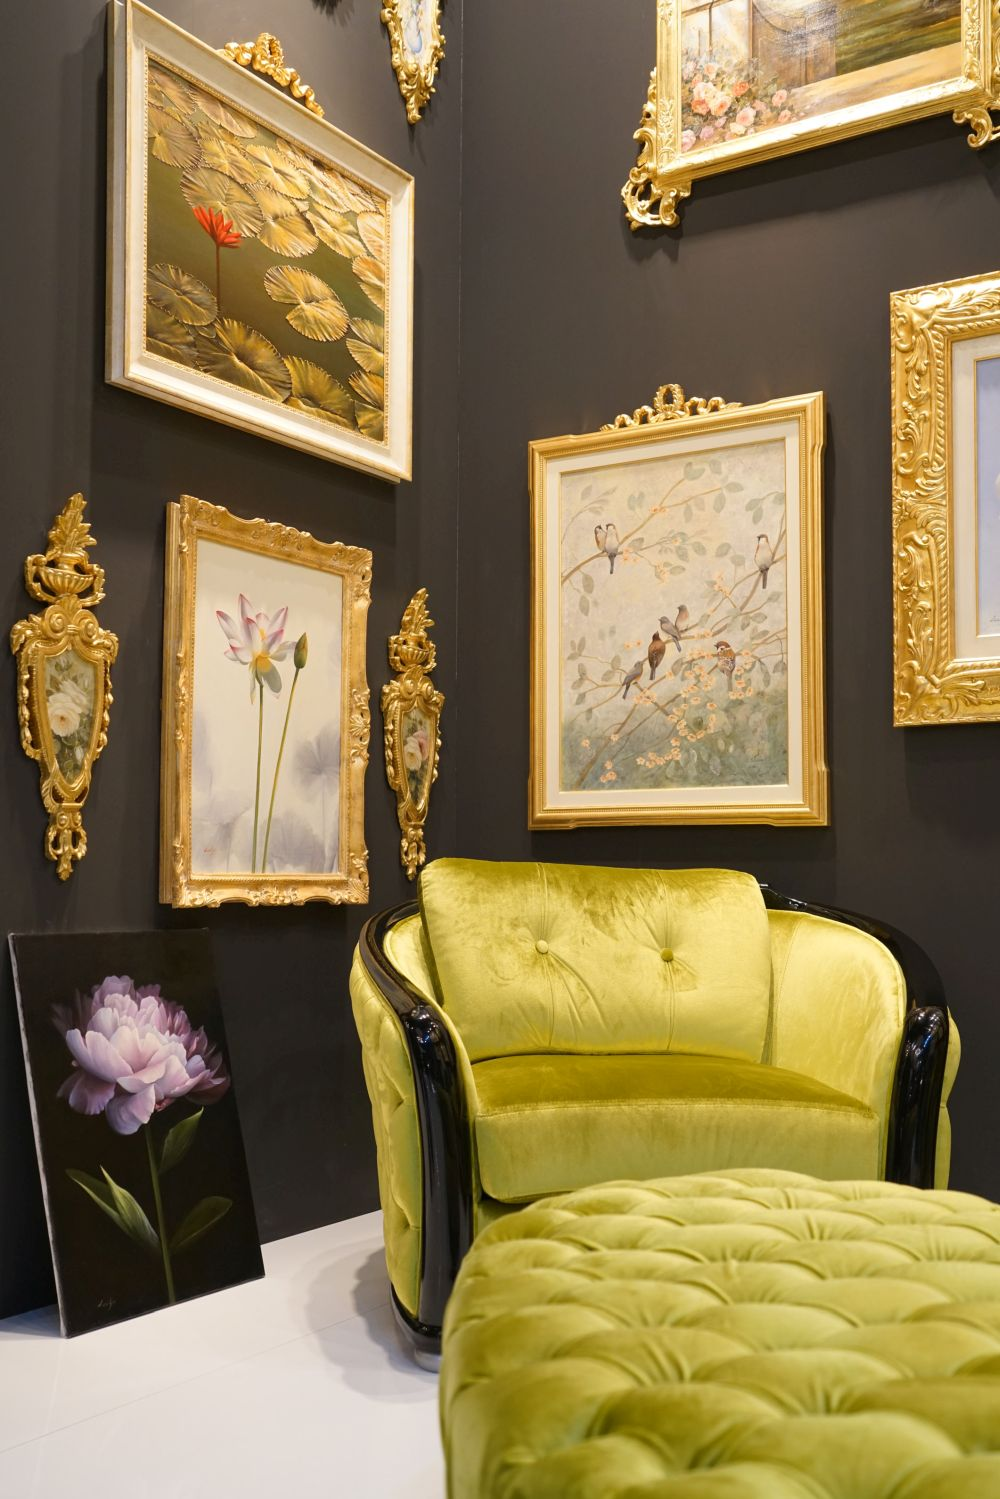 Decorate the walls of your reading corner with framed photos or paintings